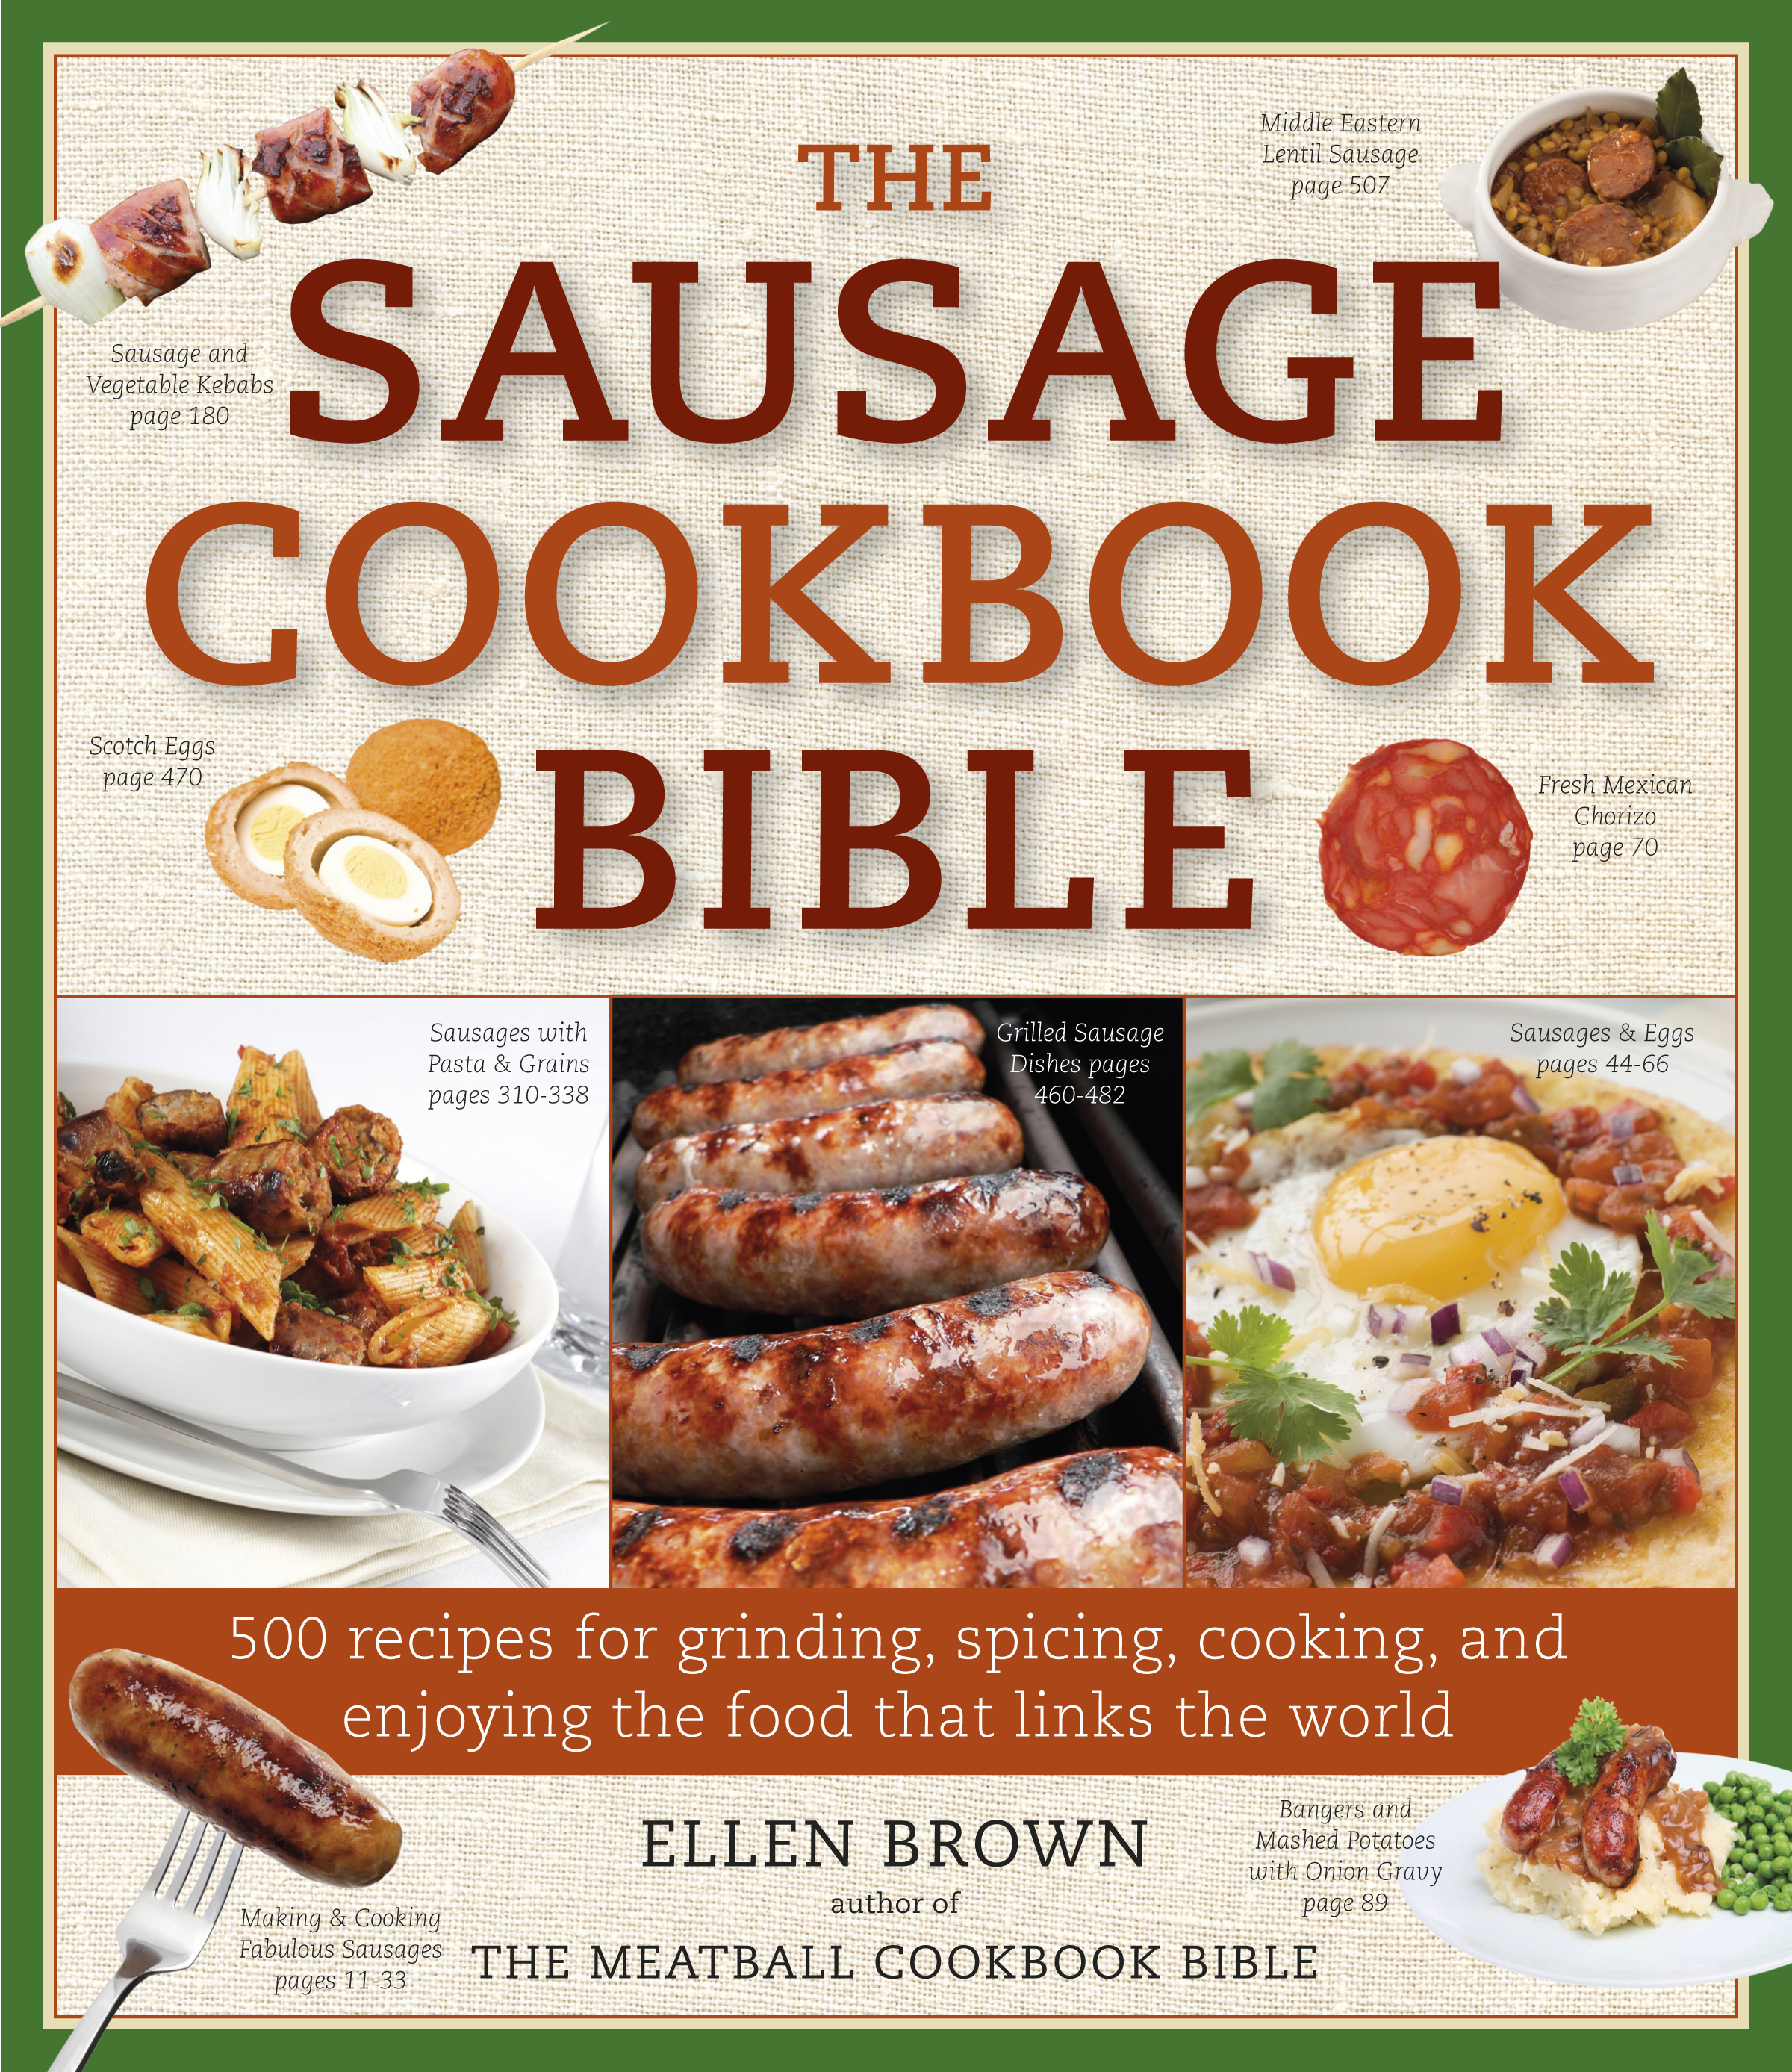 Food Book Cover Job : The sausage cookbook bible book by ellen brown